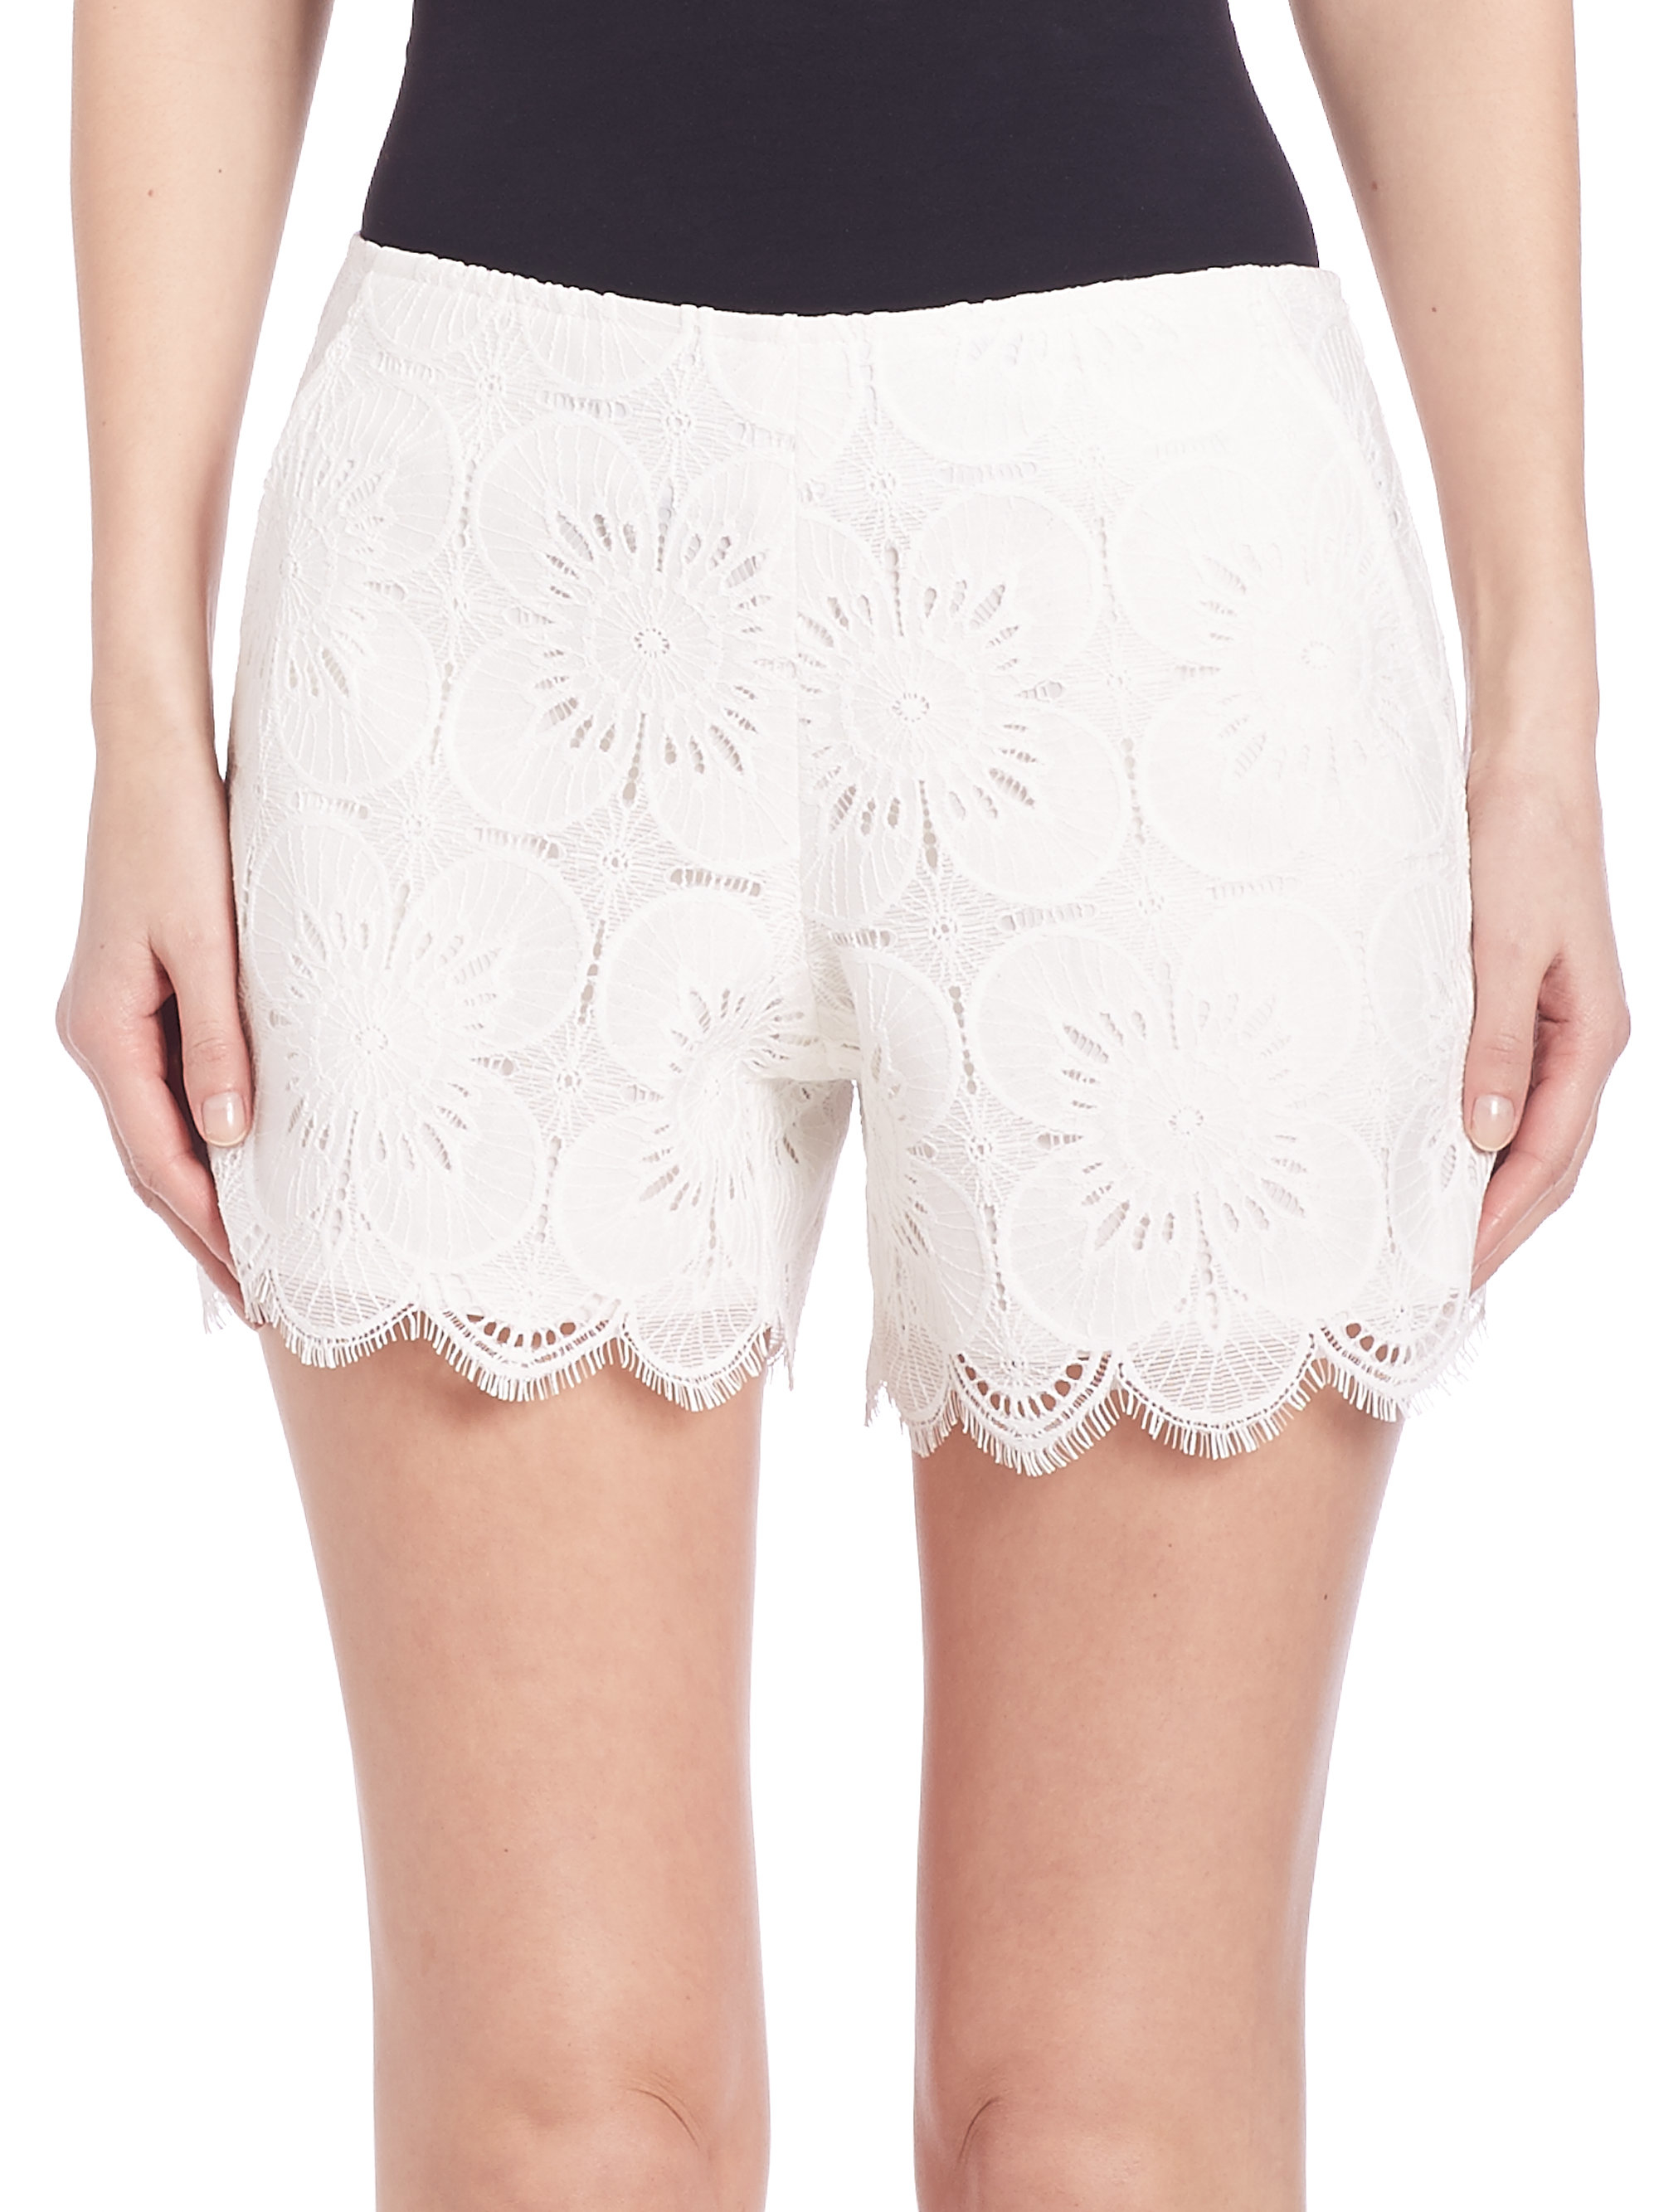 Lyst - Trina turk Lace Shorts in White